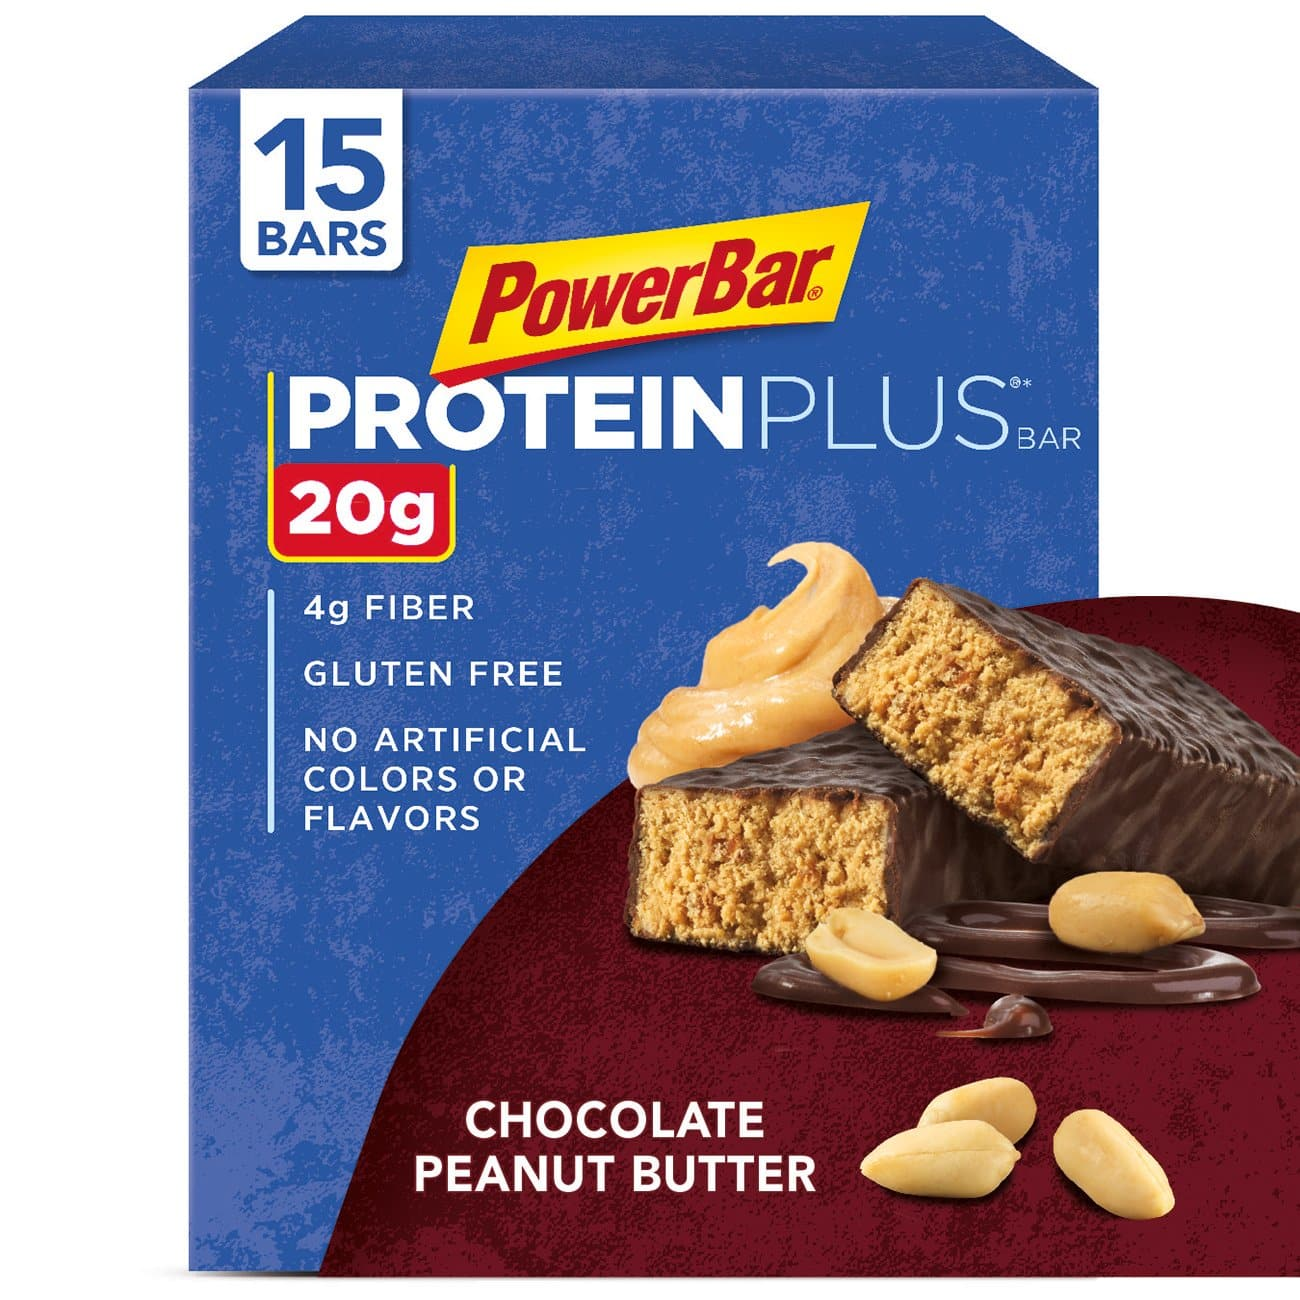 PowerBar Protein Plus Bar, Chocolate Peanut Butter, 2.12 oz Bar, (15 Count) $13.13